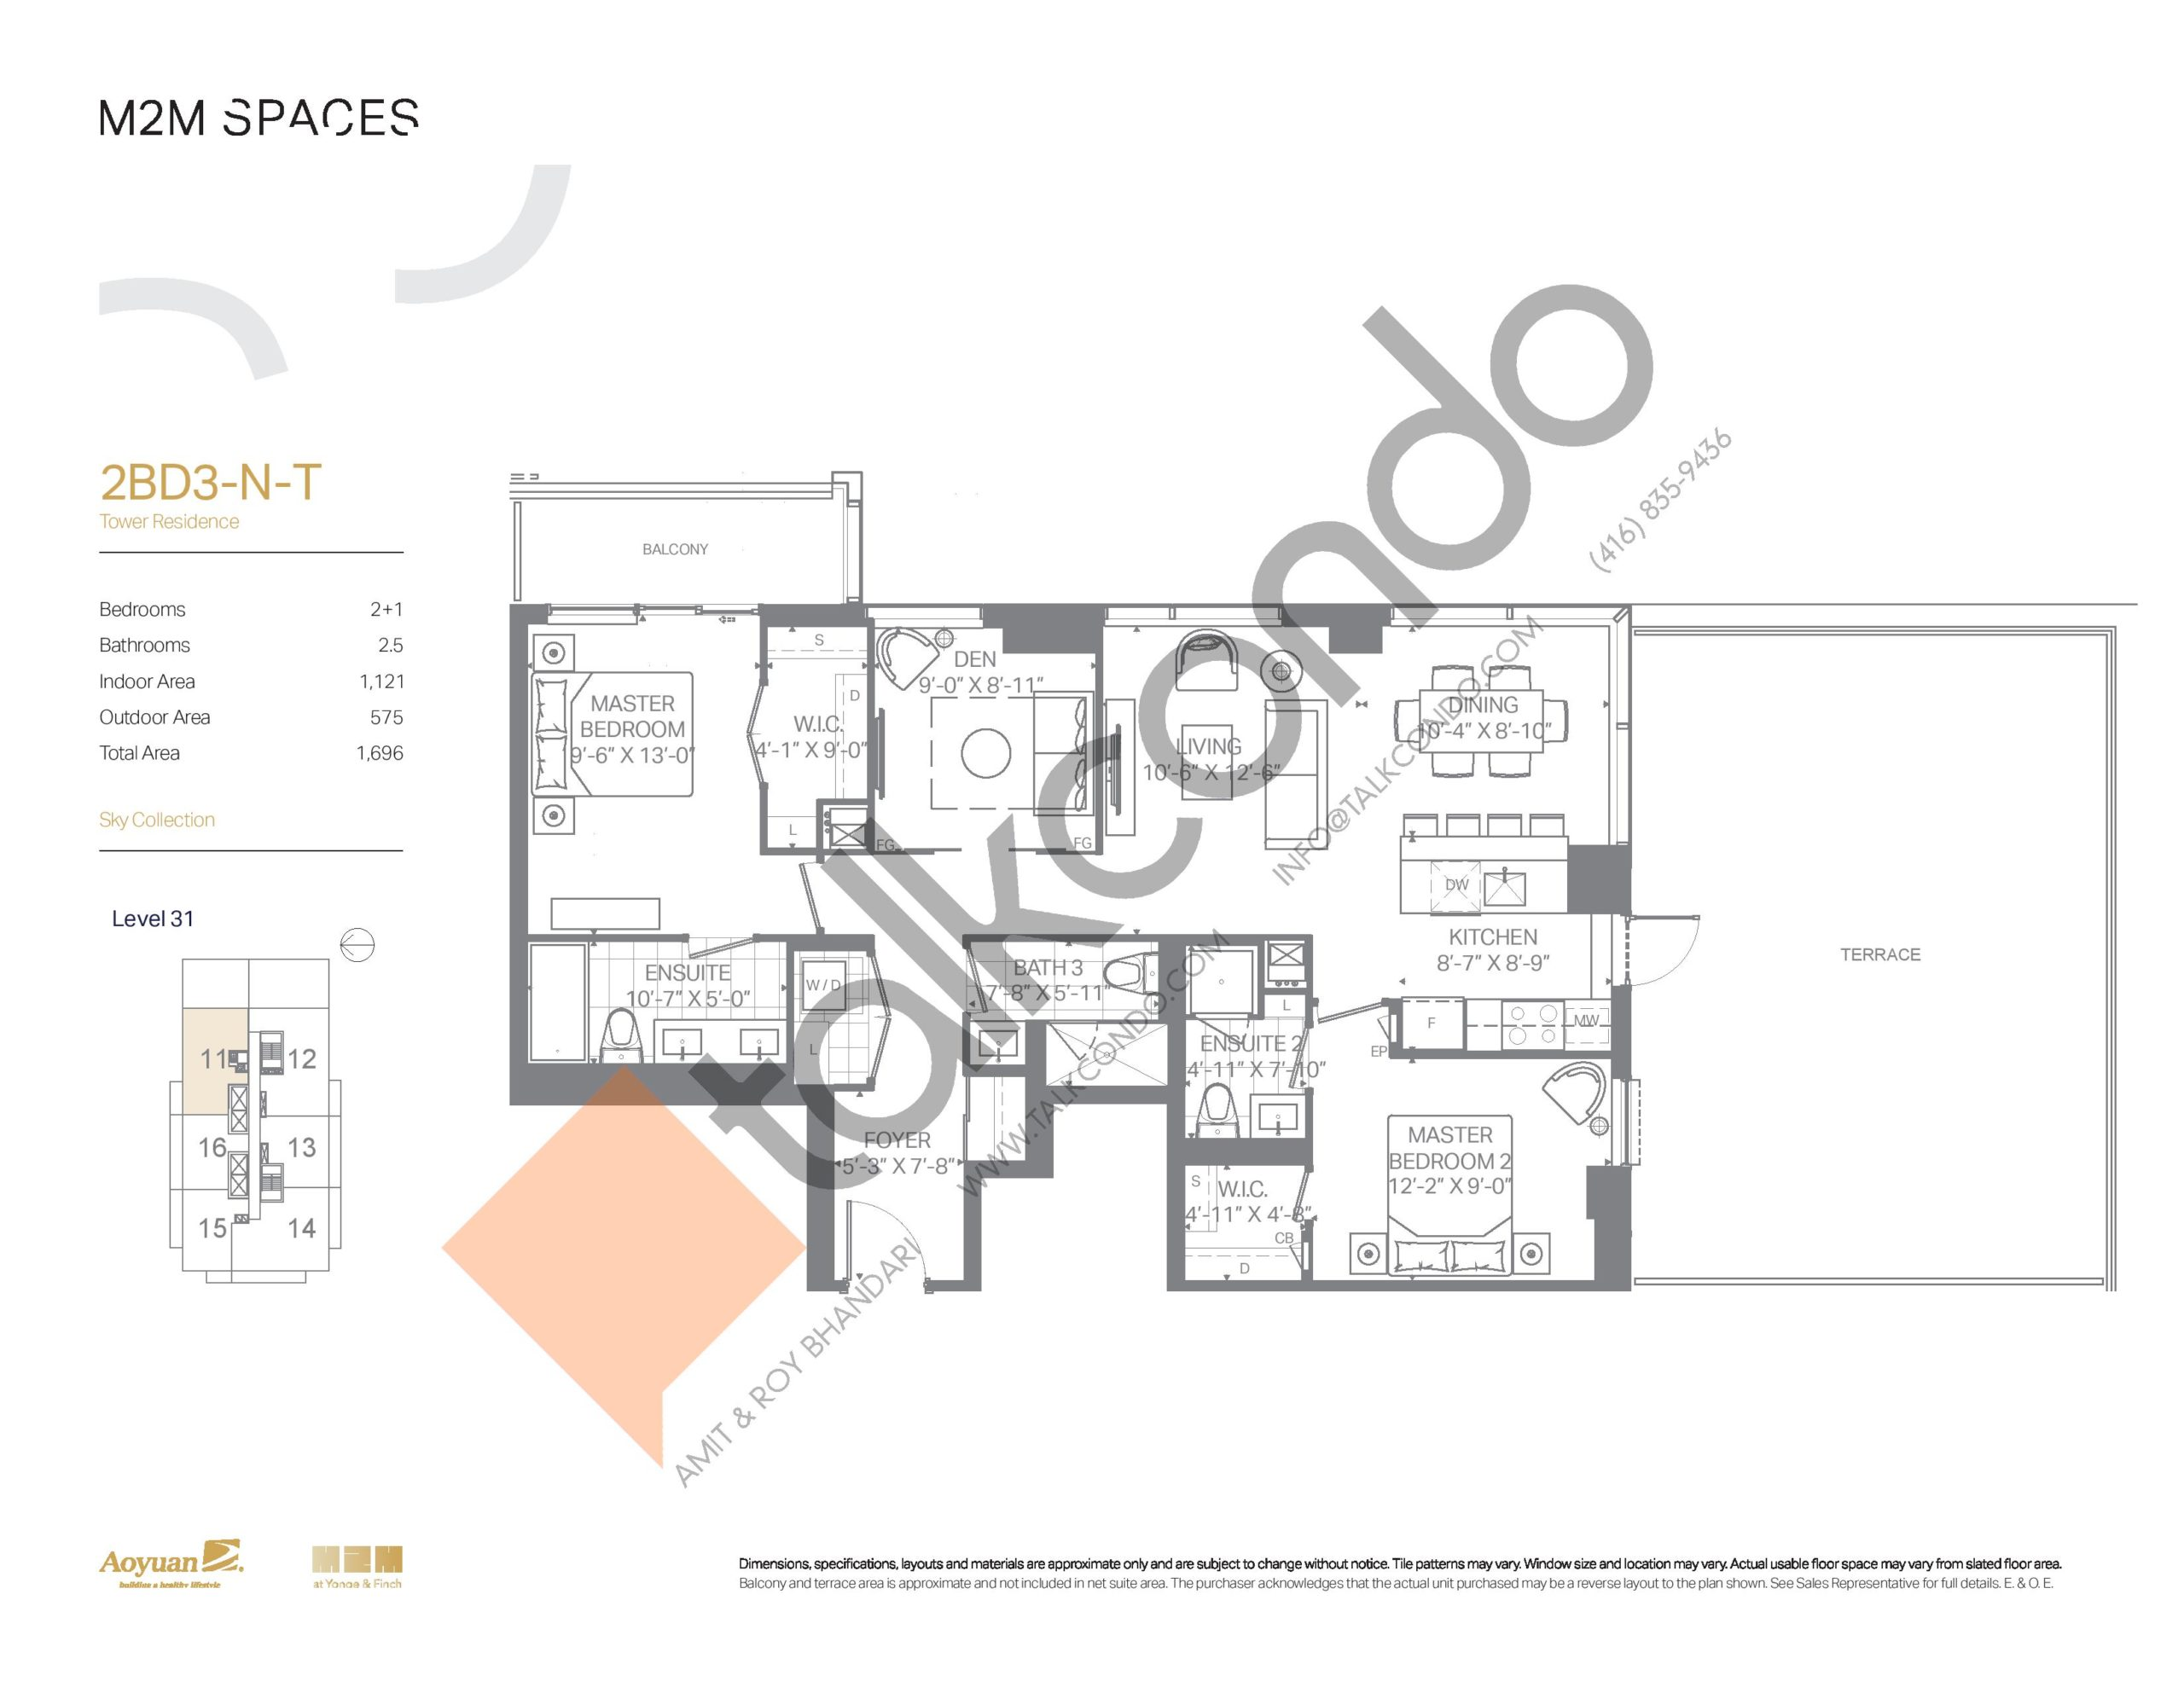 2BD3-N-T (Sky Collection) Floor Plan at M2M Spaces Condos - 1121 sq.ft